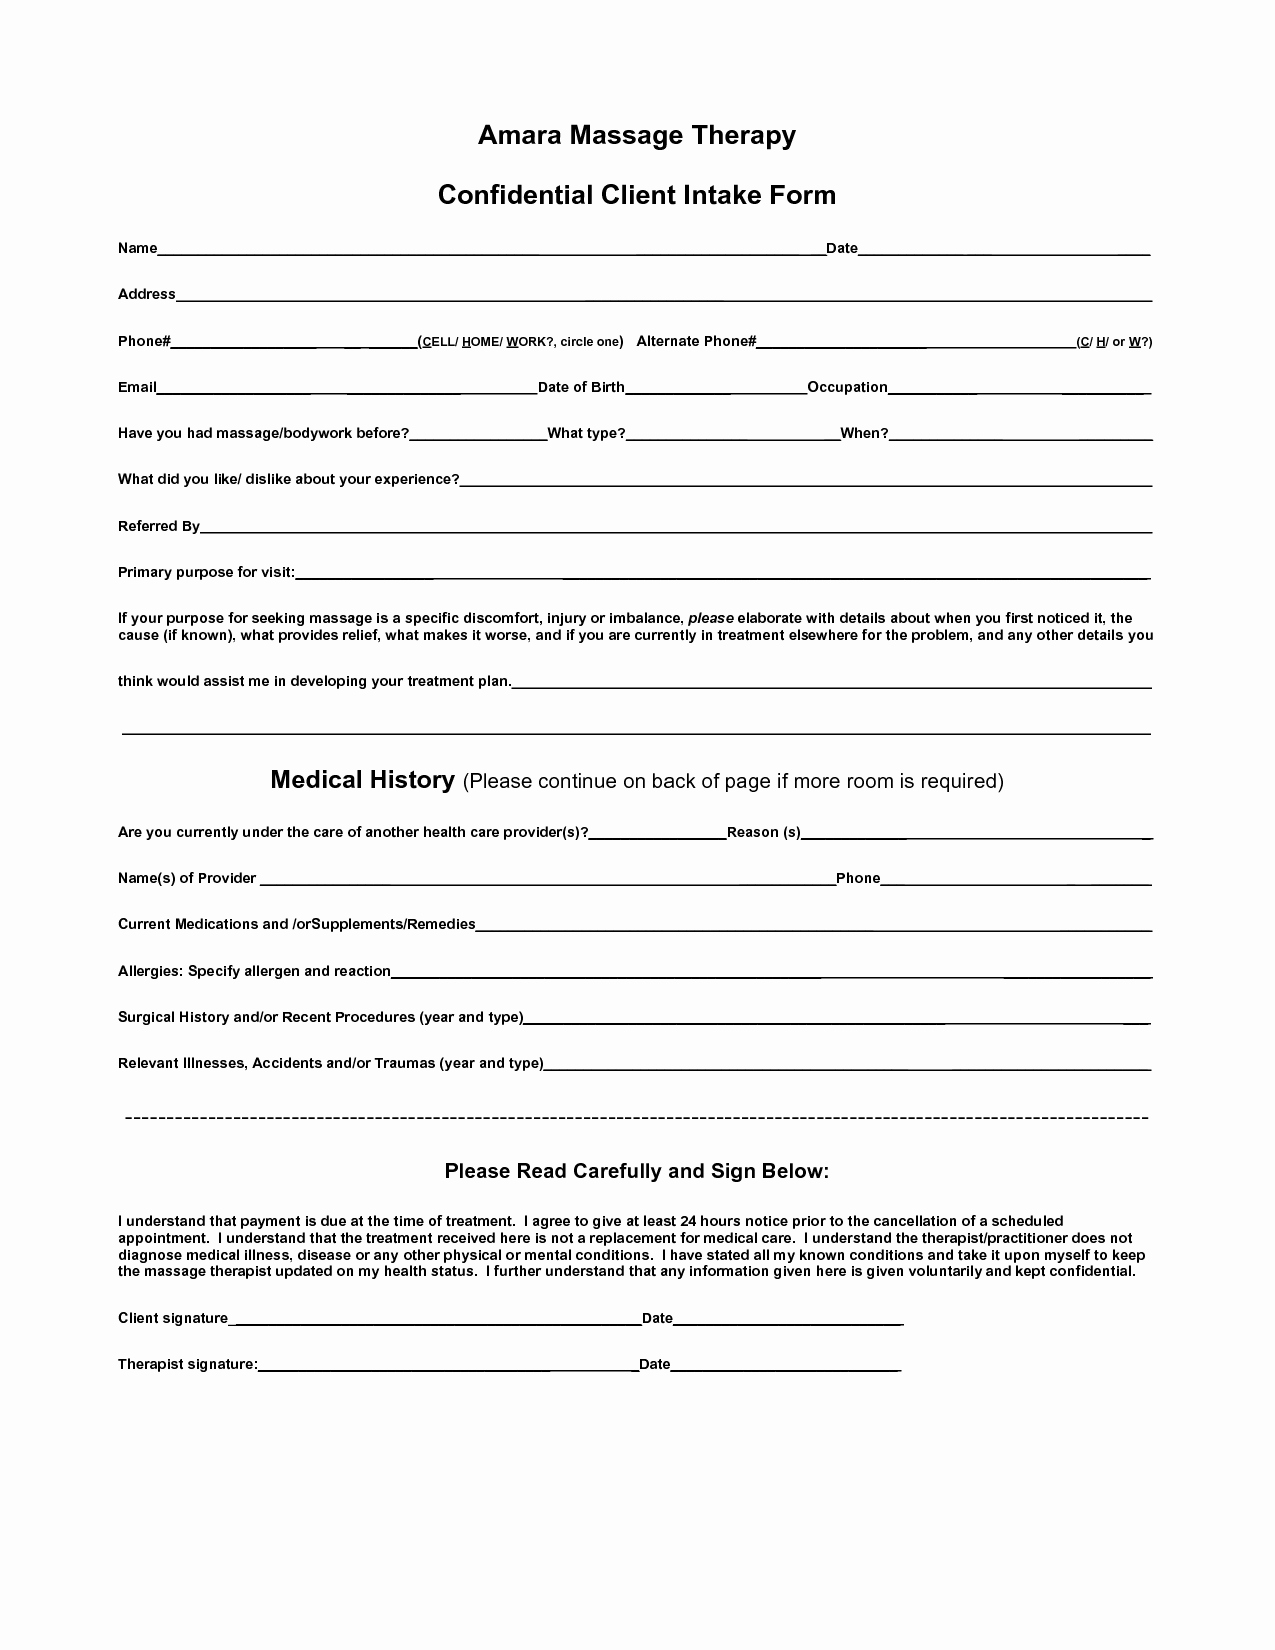 Counseling Intake form Template Best Of Body Intake form Clipart Clipart Suggest